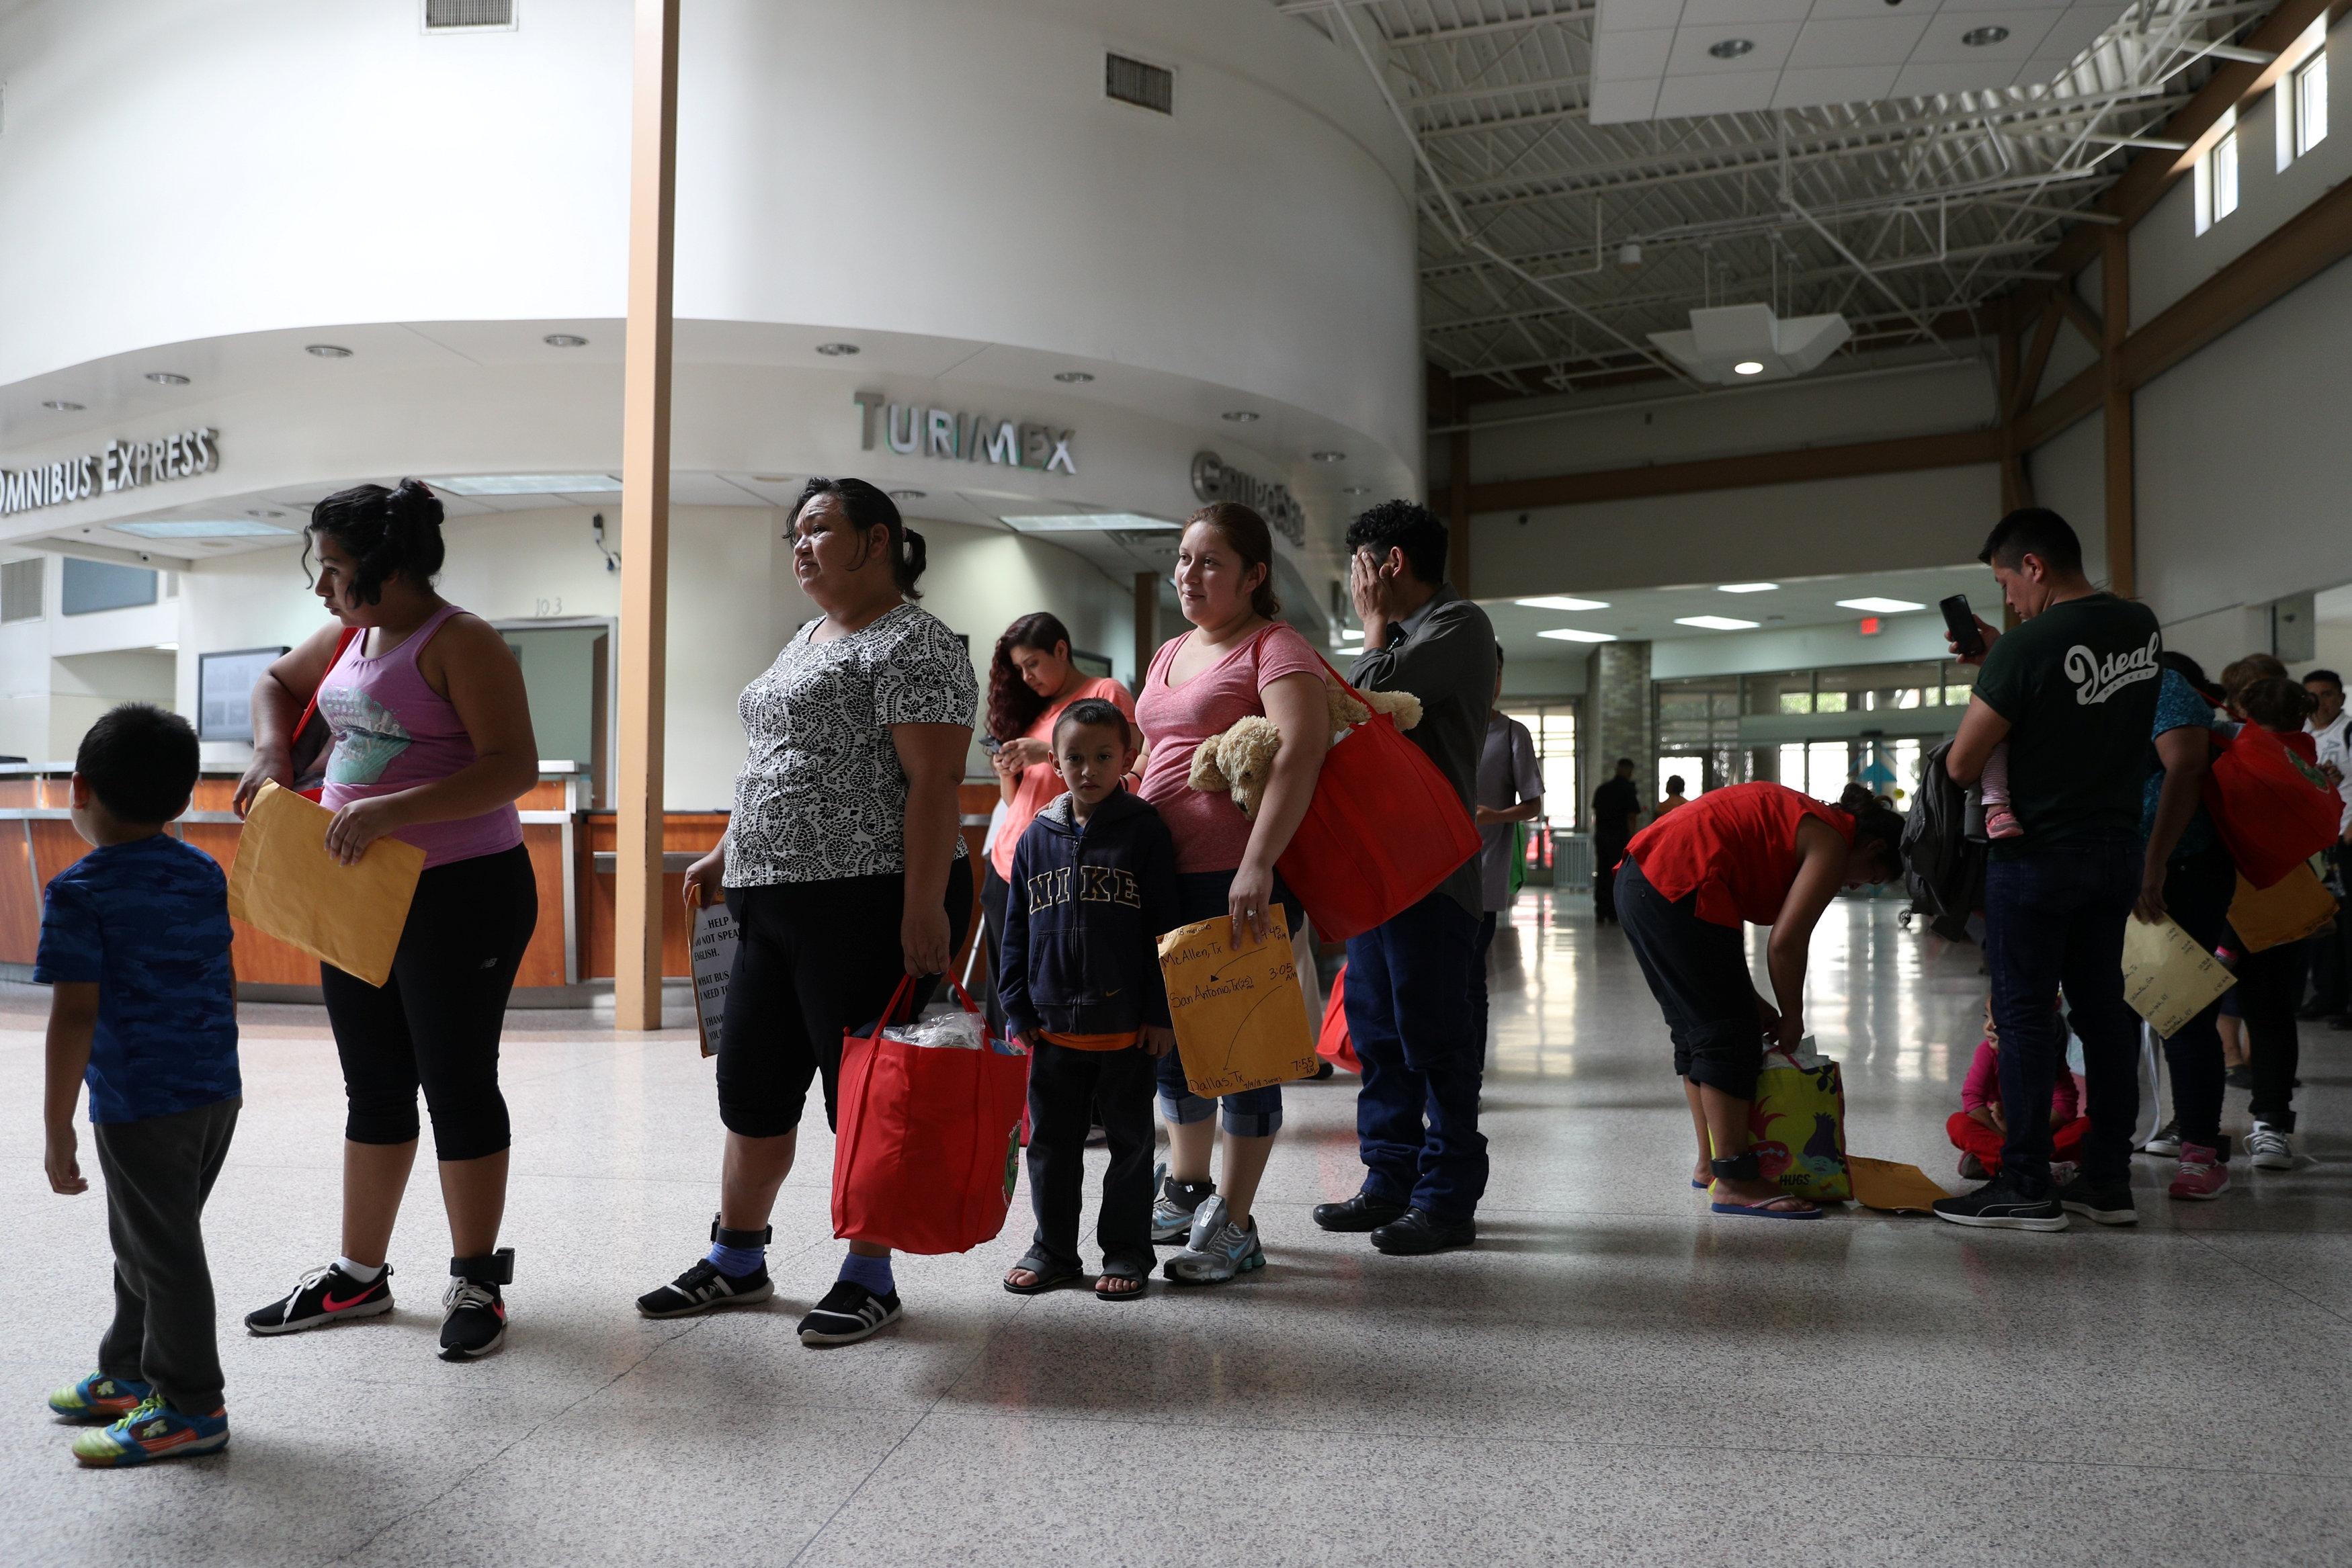 Undocumented immigrants recently released from detention prepare to depart a bus depot for cities around the country in McAllen, Texas, U.S., July 18, 2018. Picture taken July 18, 2018.  Loren Elliott